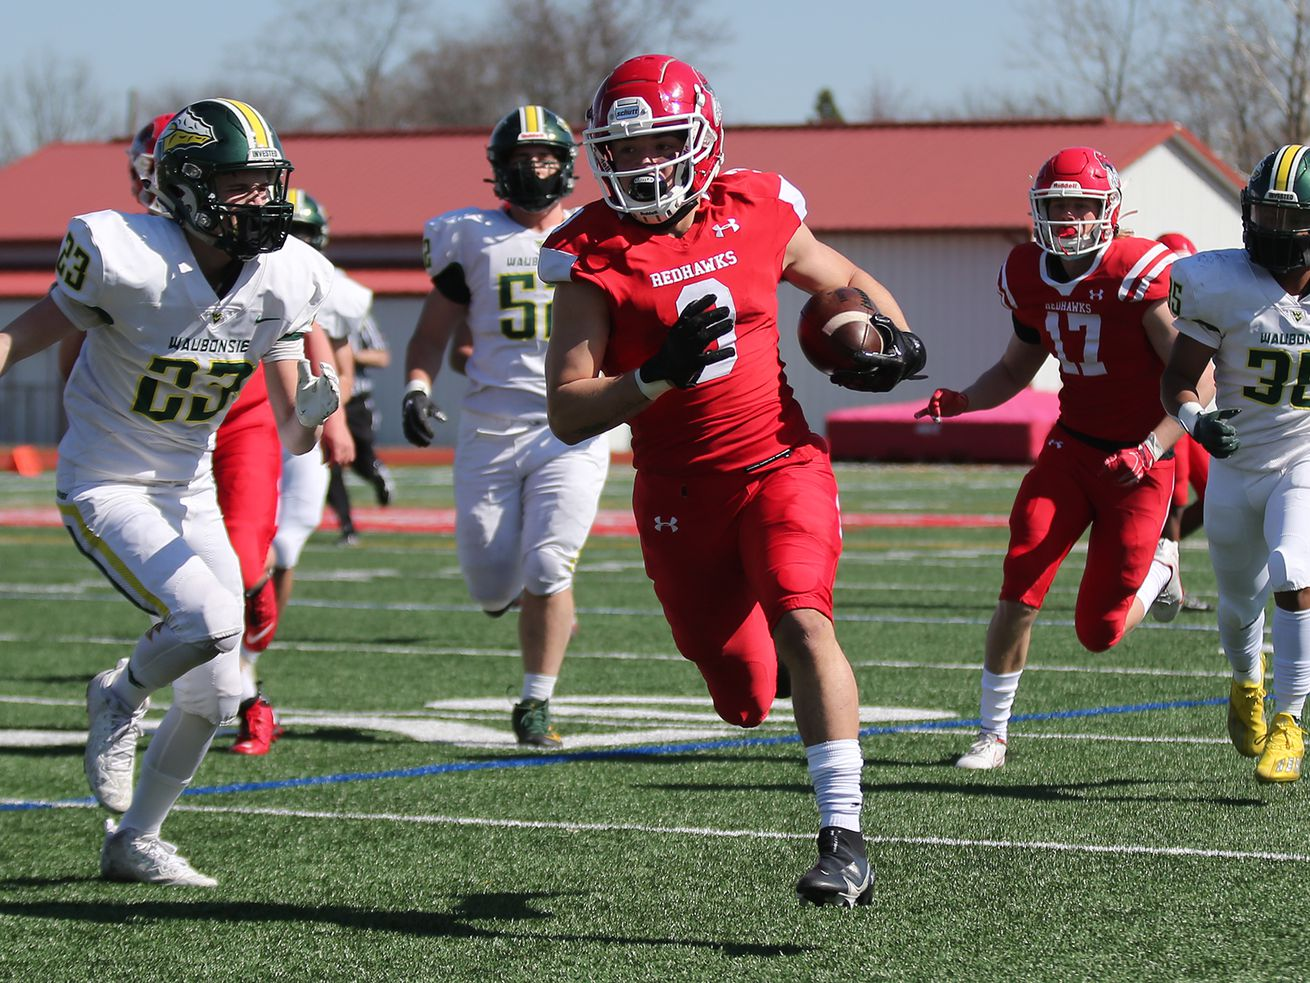 Naperville Central's Antonio Torres (3) breaks free for a touchdown against Waubonsie Valley.